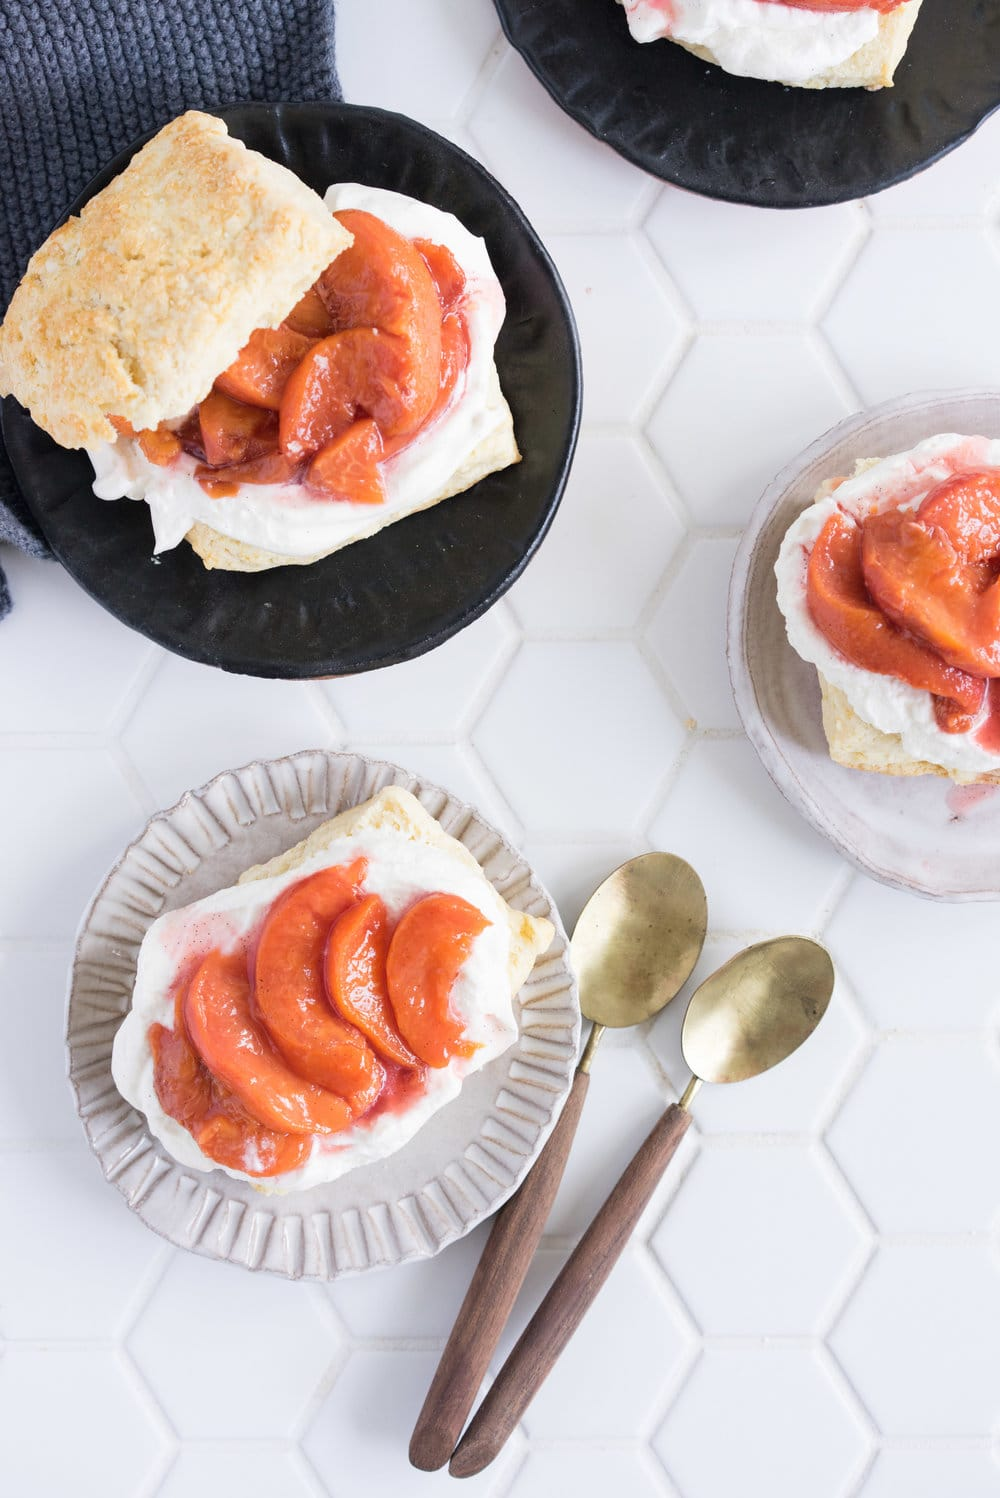 Scones with Roasted Peaches and Vanilla Bean Whipped Cream - the perfect summer morning or afternoon tea treat